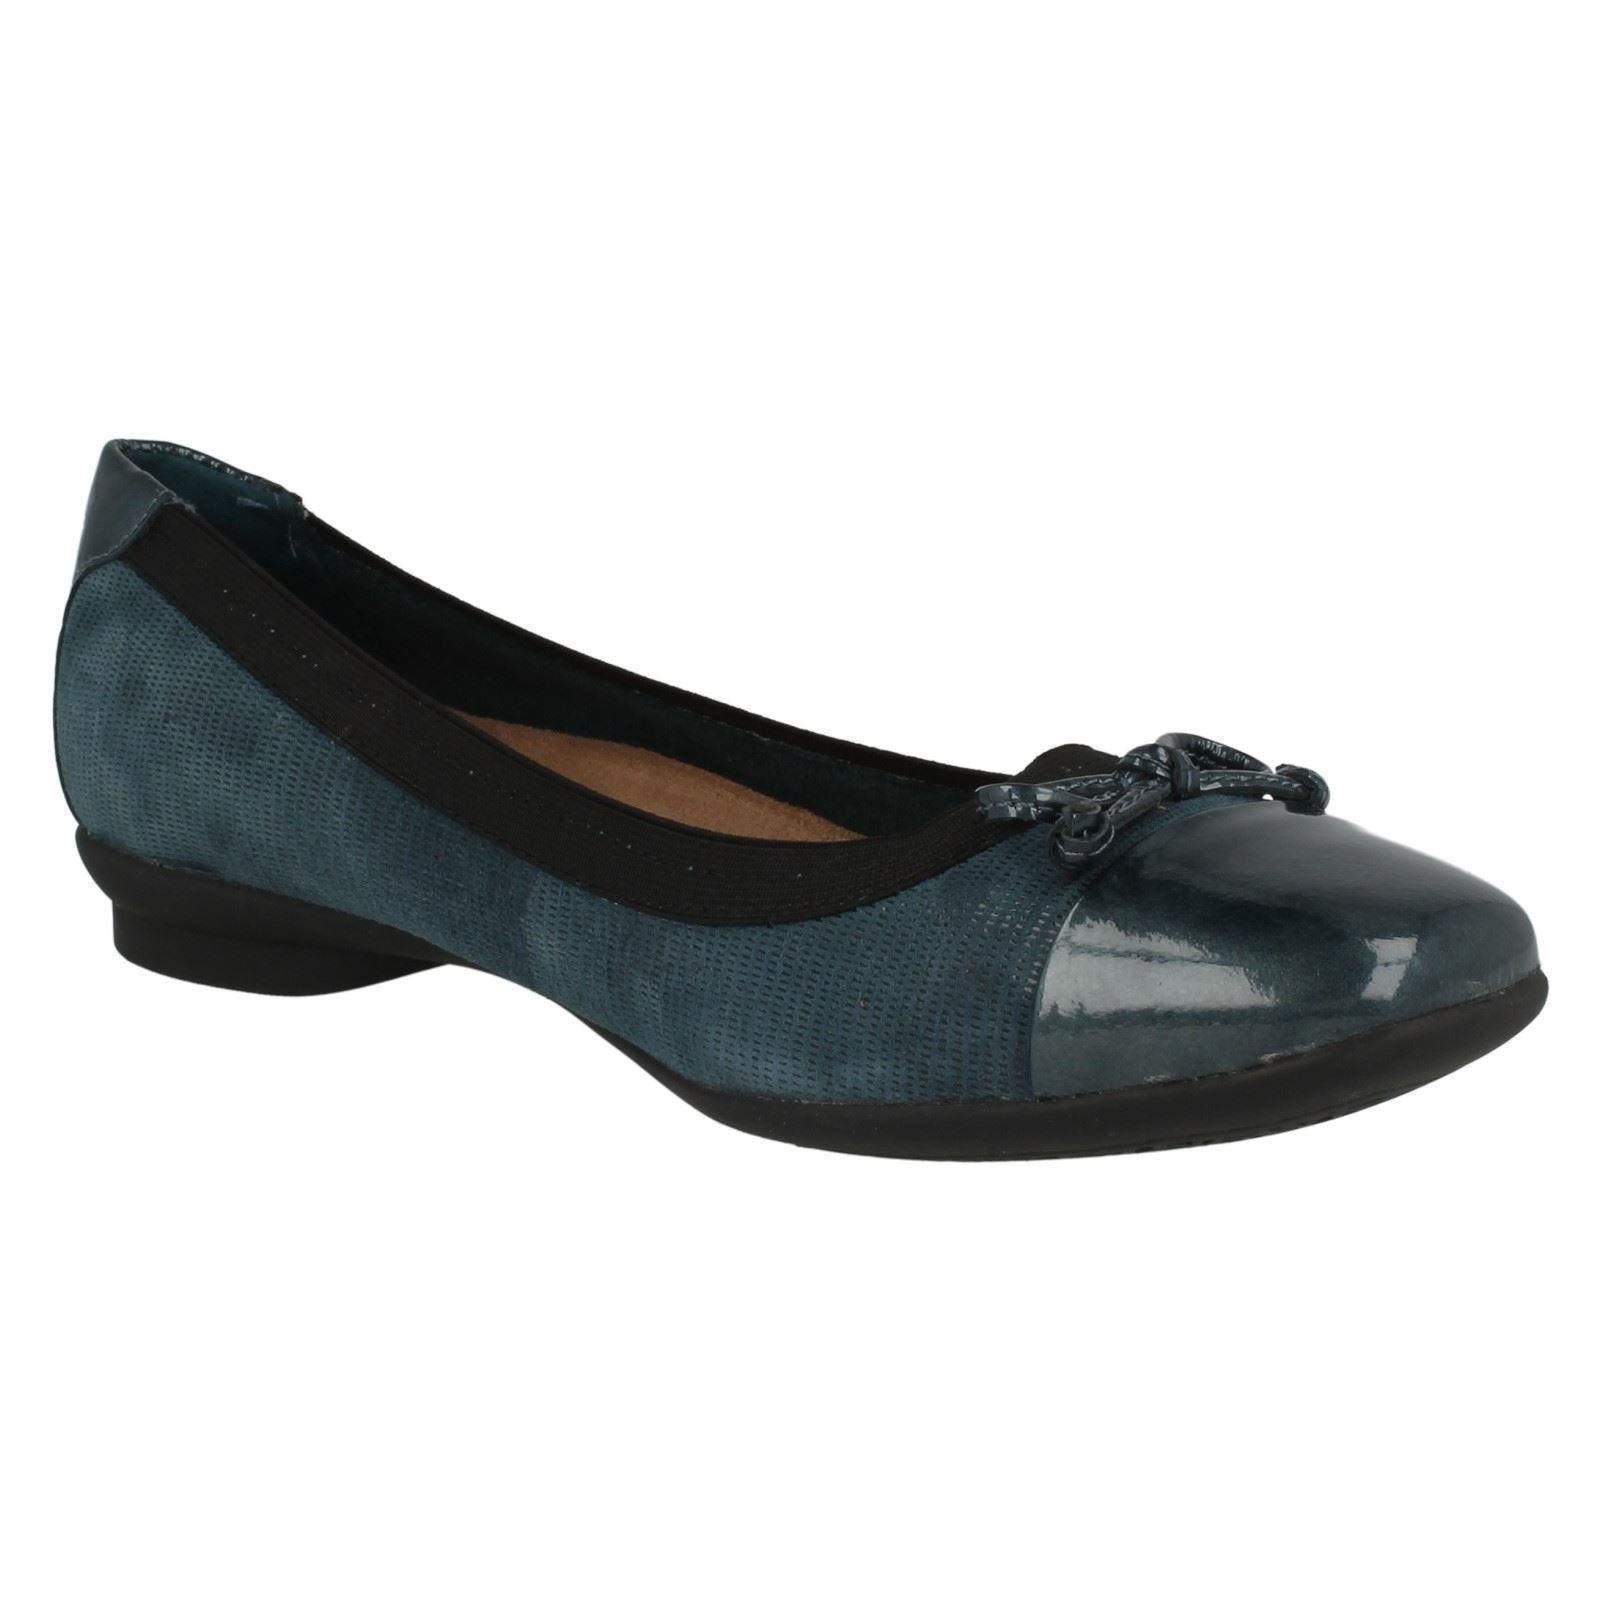 Clarks Ladies Wide Fitting Ballet Pumps Candra Glow